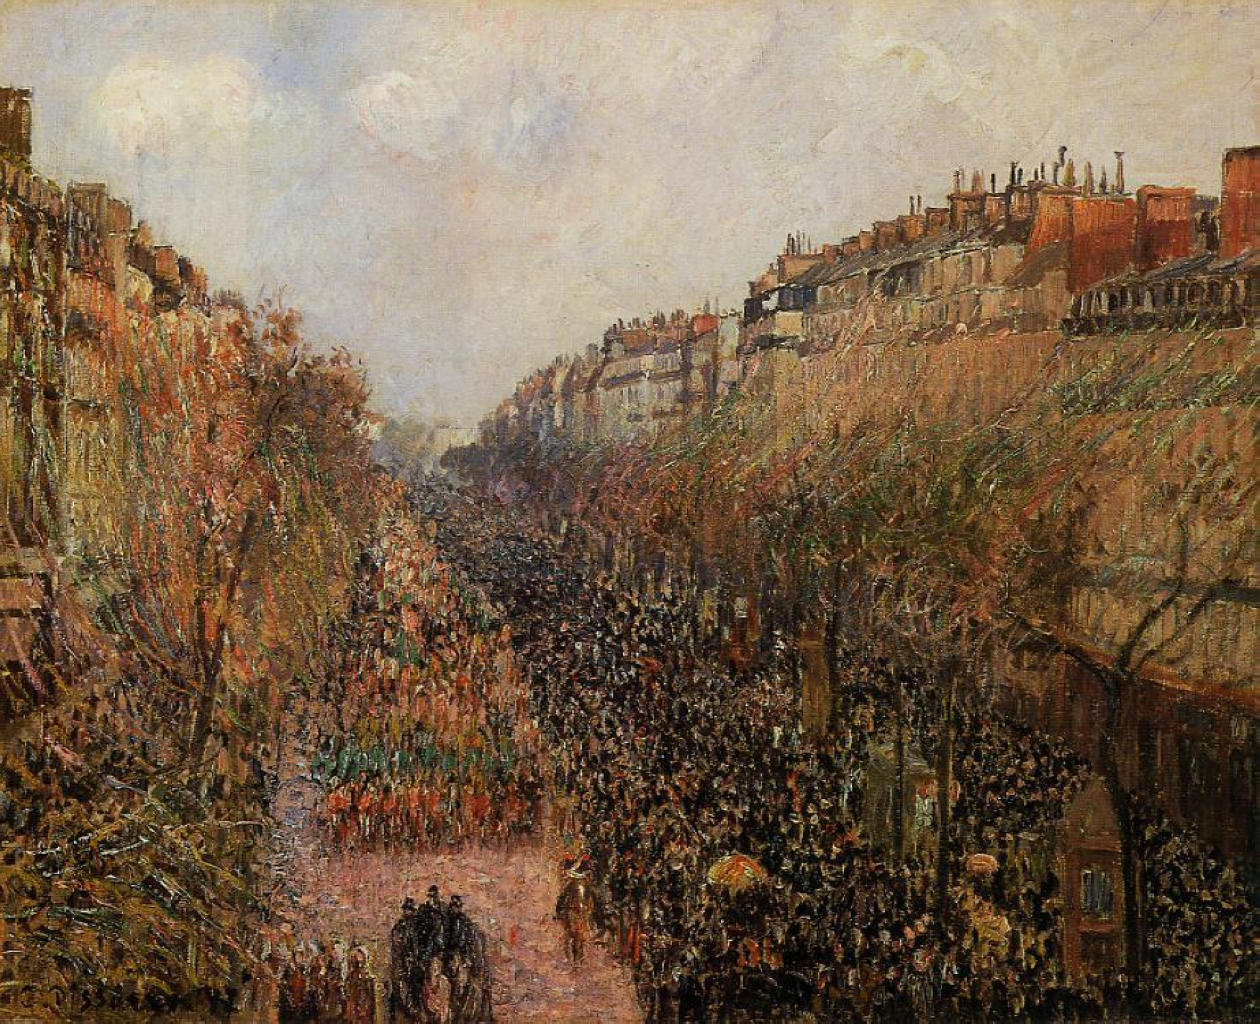 boulevard montmartre mardi gras camille pissarro encyclopedia of visual arts. Black Bedroom Furniture Sets. Home Design Ideas